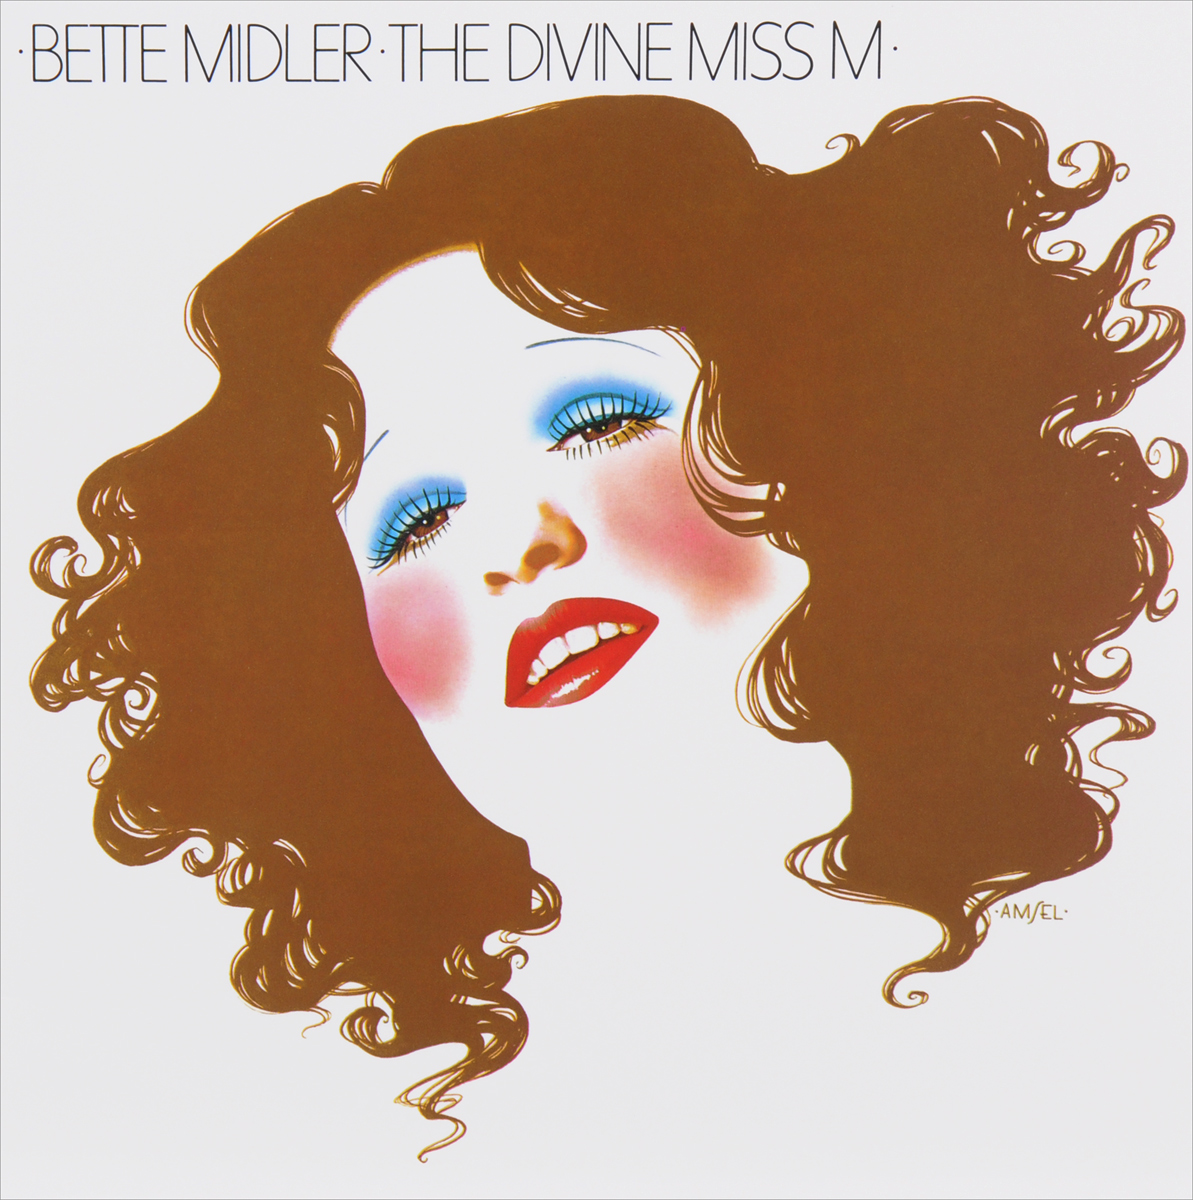 Фото - Бетт Мидлер Bette Midler. The Divine Miss M (LP) standard usb 3 0 a male am to usb 3 0 a female af usb3 0 extension cable 0 3 m 0 6 m 1 m 1 5 m 1 8m 3m 1ft 2ft 3ft 5ft 6ft 10ft